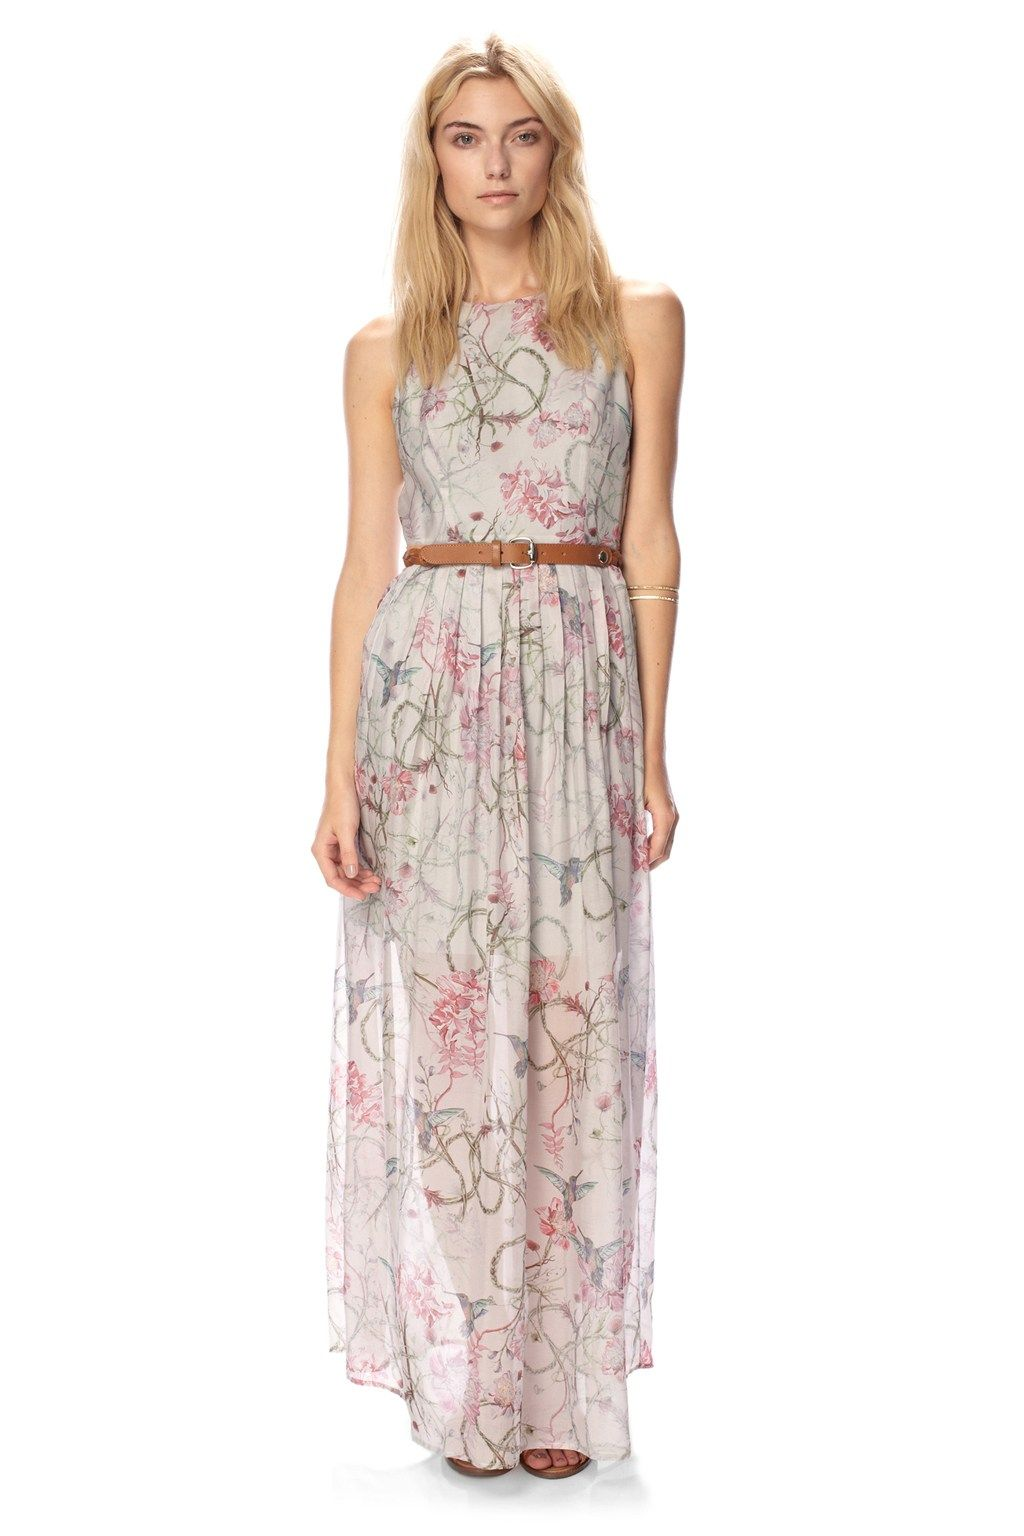 d2be3ca90c71 Eden Of Zola Silk Maxi Dress - Dresses - French Connection Usa ...